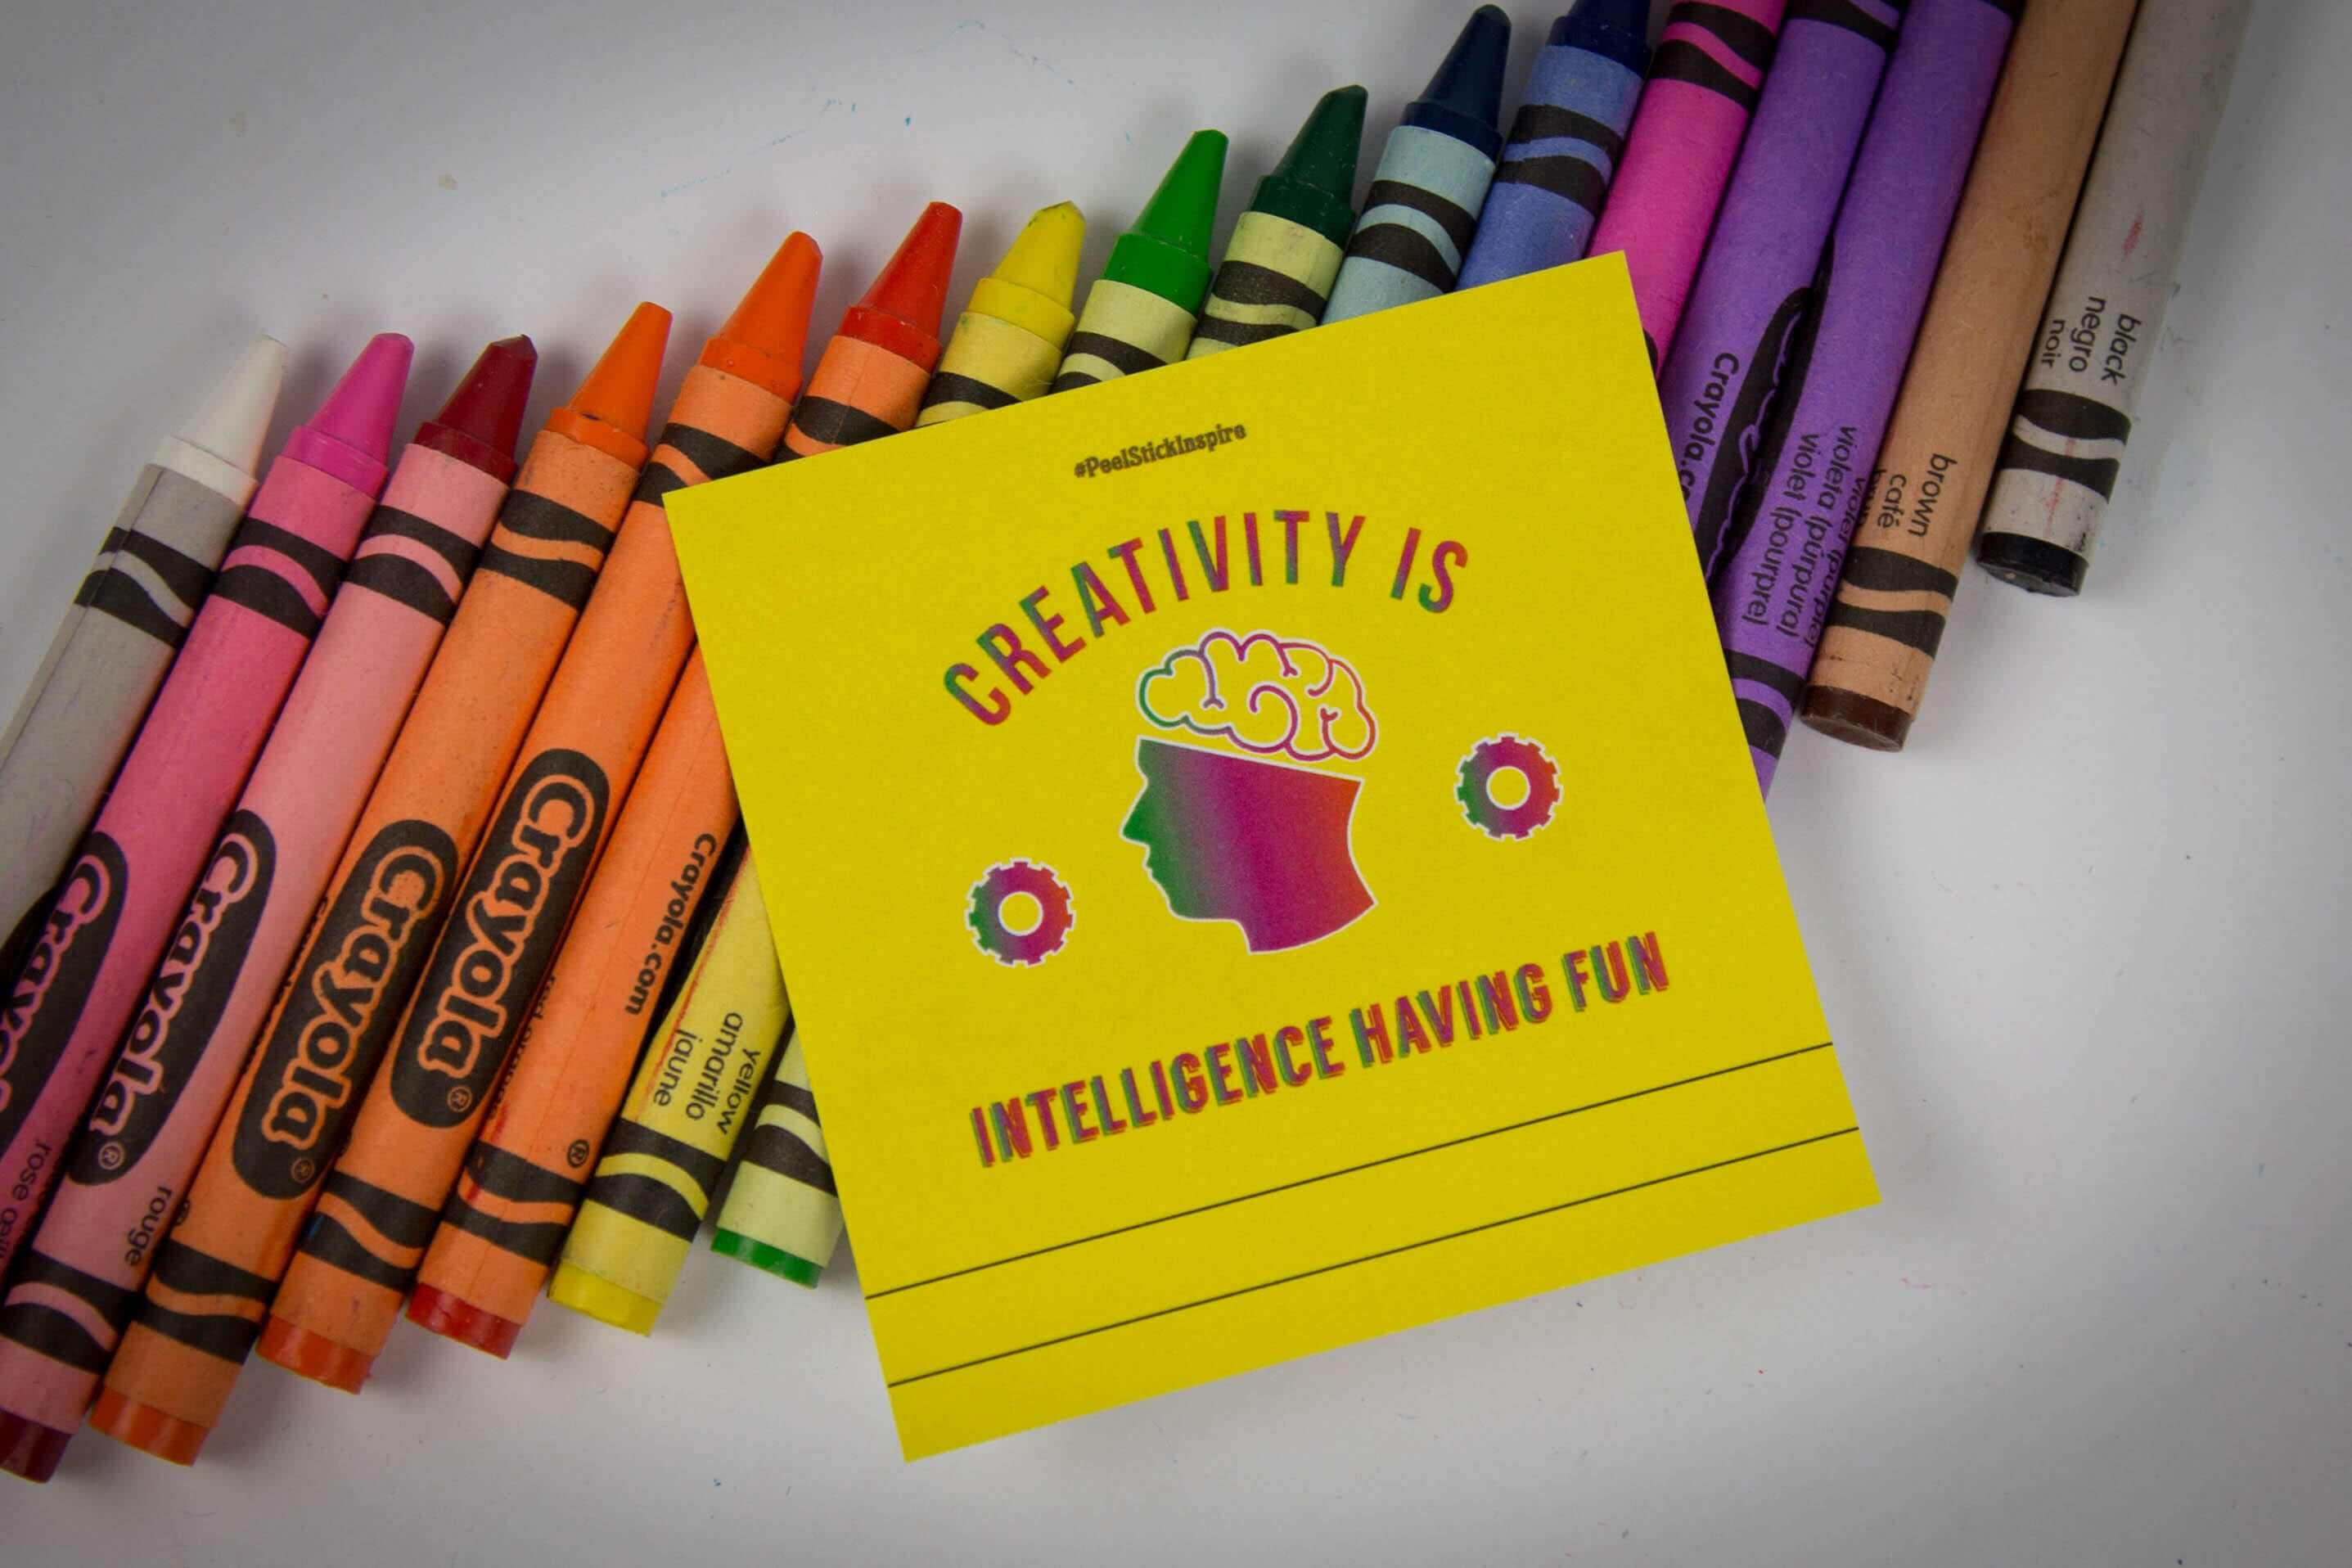 Quotes On Sticky Notes: Inspirational & Motivational Quotes